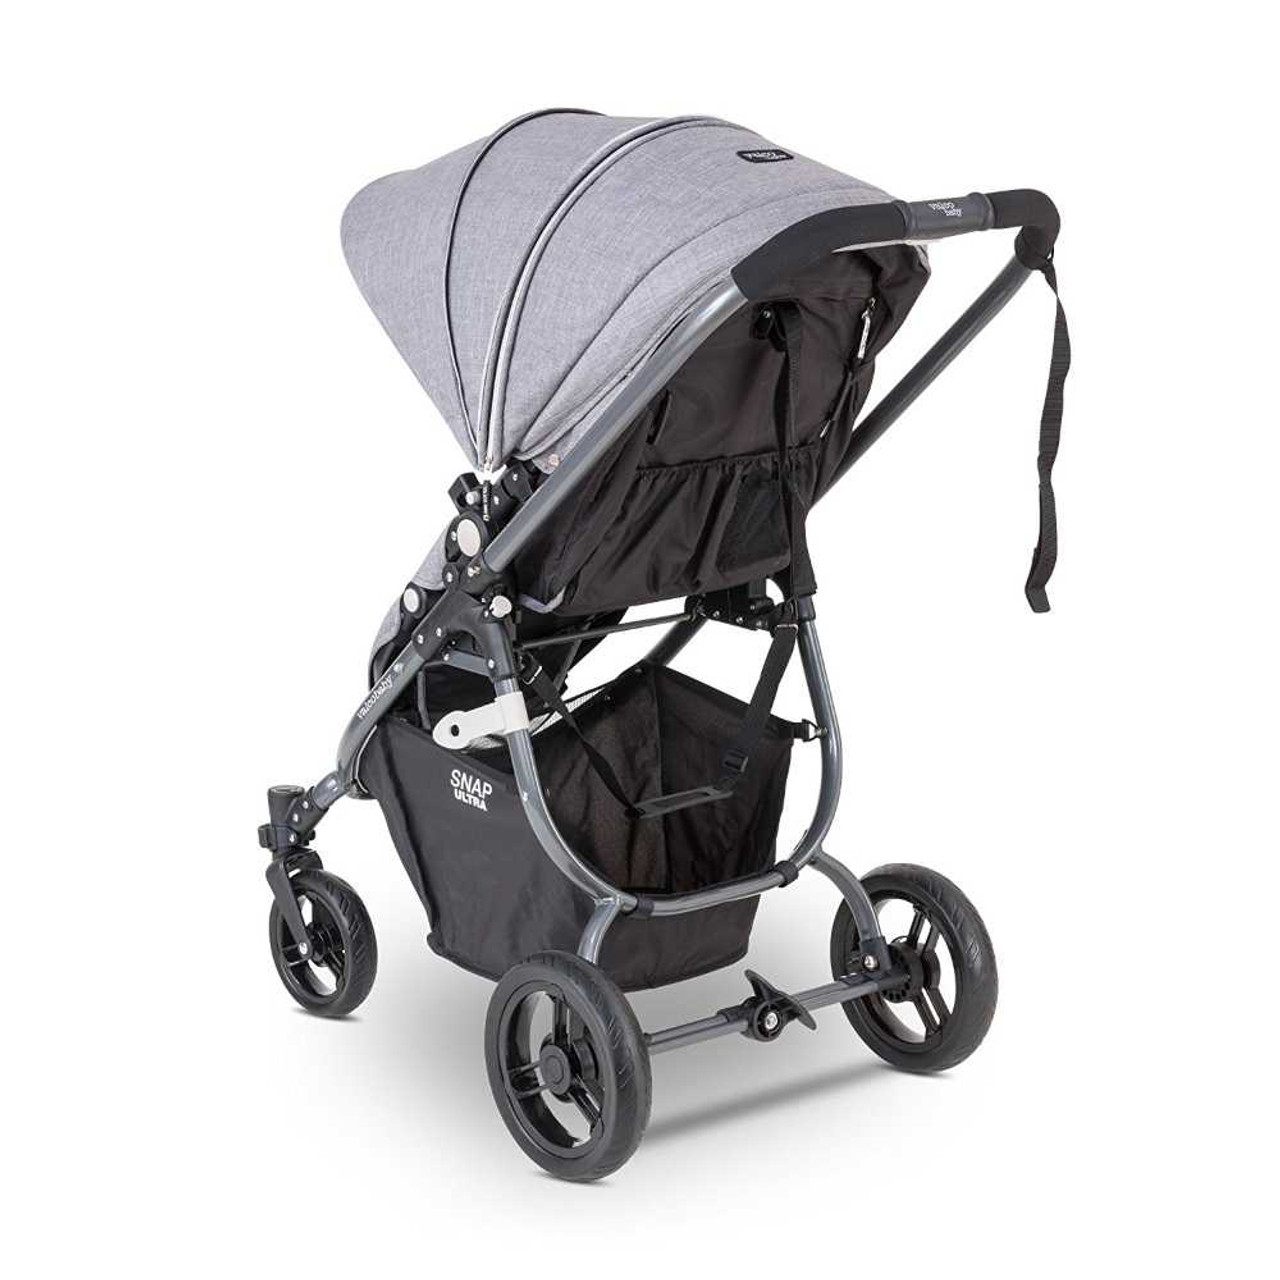 Valco Snap Ultra with basket